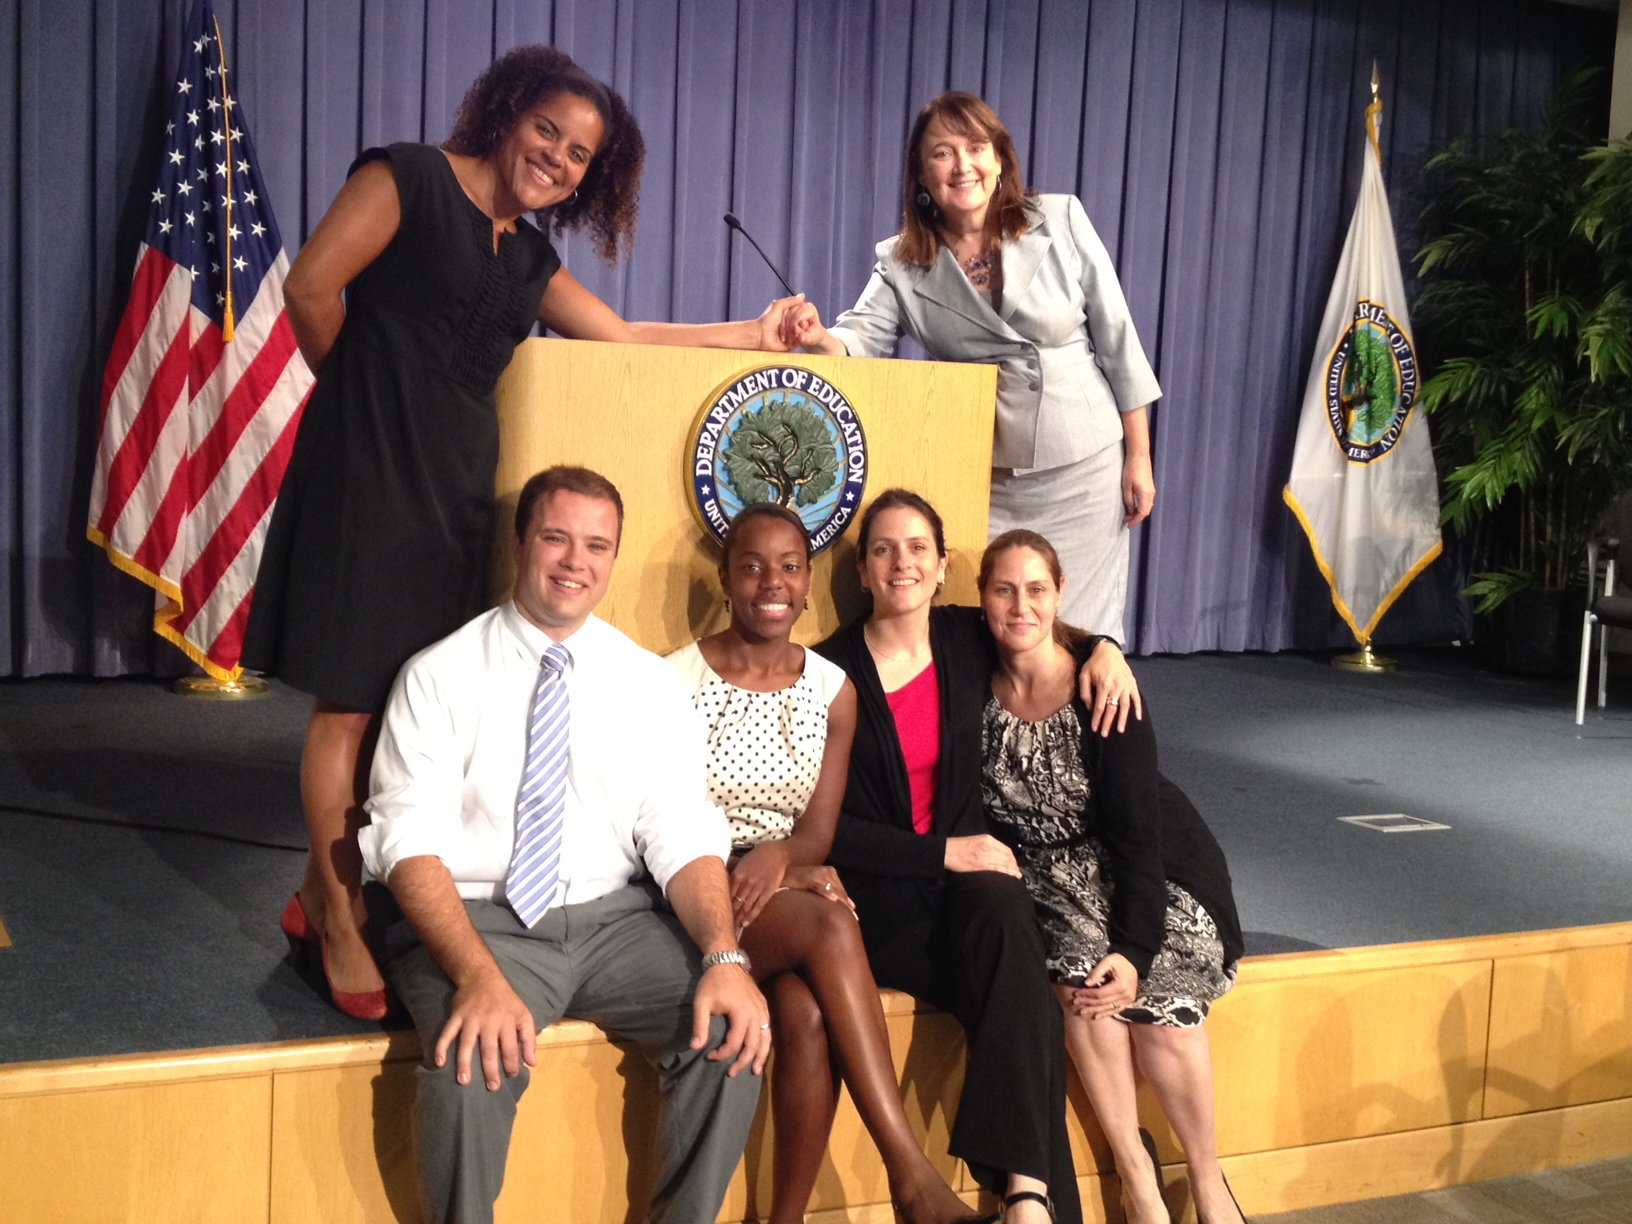 Here I am with my team of Washington Teaching Ambassadors at the end of our fellowship year in 2012. Pictured from left to right: (back row) Me and Maryann Woods-Murphy (NJ), (front row) Greg Mullenholz (MD), Shakera Walker (MA), Claire Jellinek (NM), and Gillian Cohen-Boyer (Director of the Teaching Ambassador Fellowship at the U.S. Department of Education).